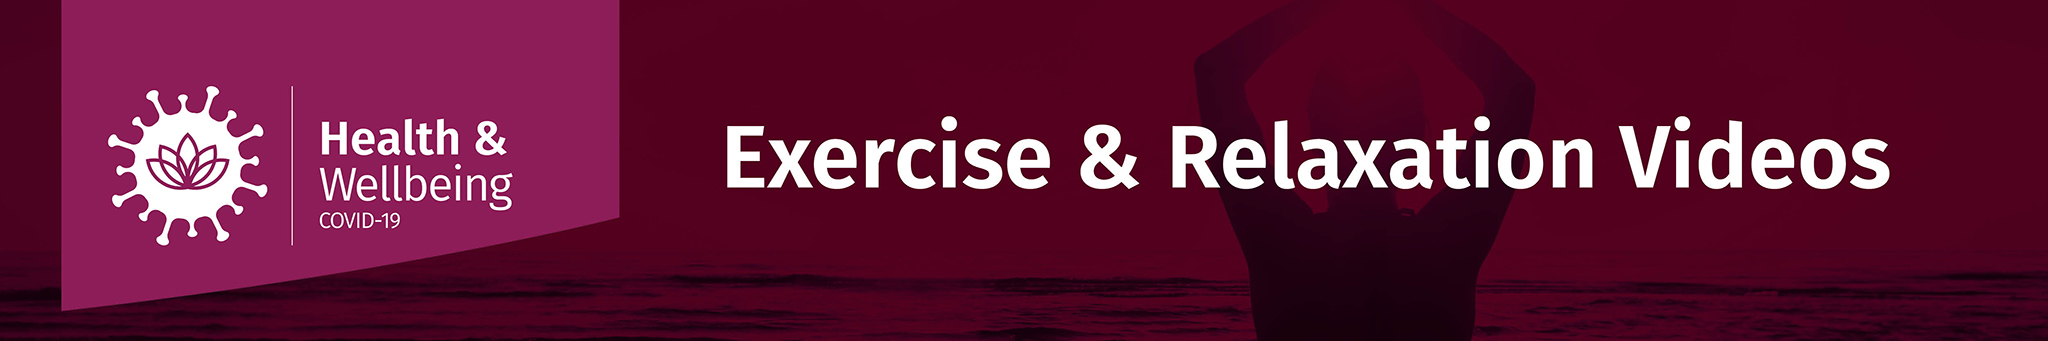 Exercise & Relaxation